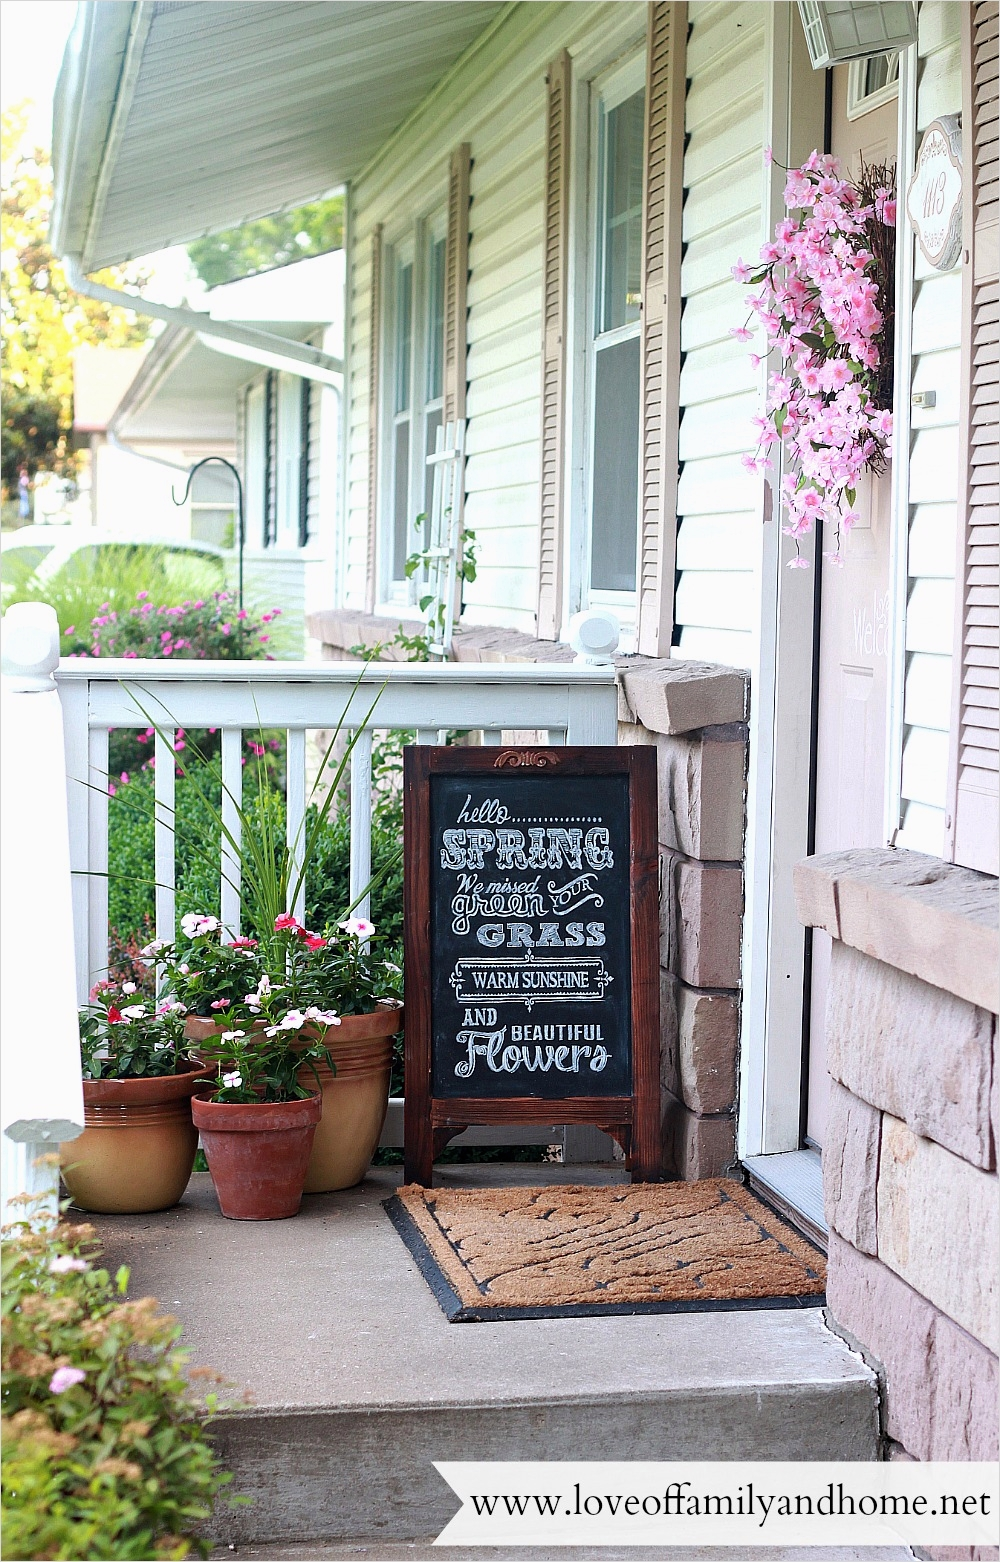 35 Stunning Little Porch Decorating Ideas for 2020 26